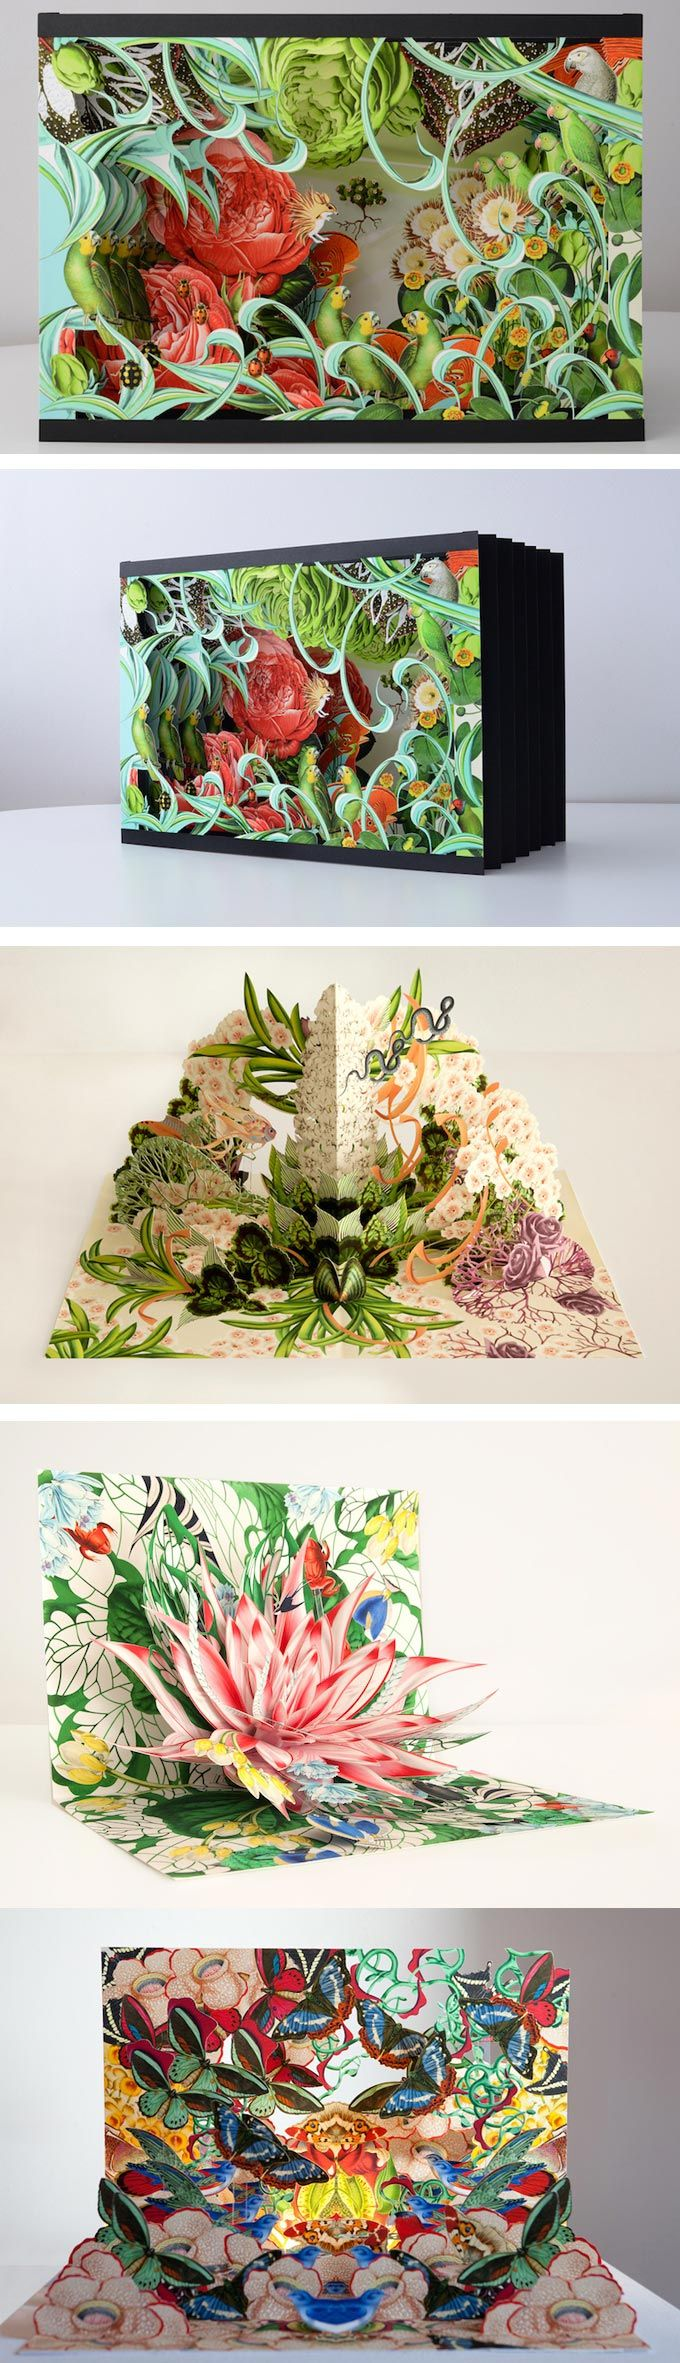 Bozka illustrates and hand-crafts pop up and accordion books. They take between 3 and 4 weeks to make! The most tedious parts can take 14 hours.